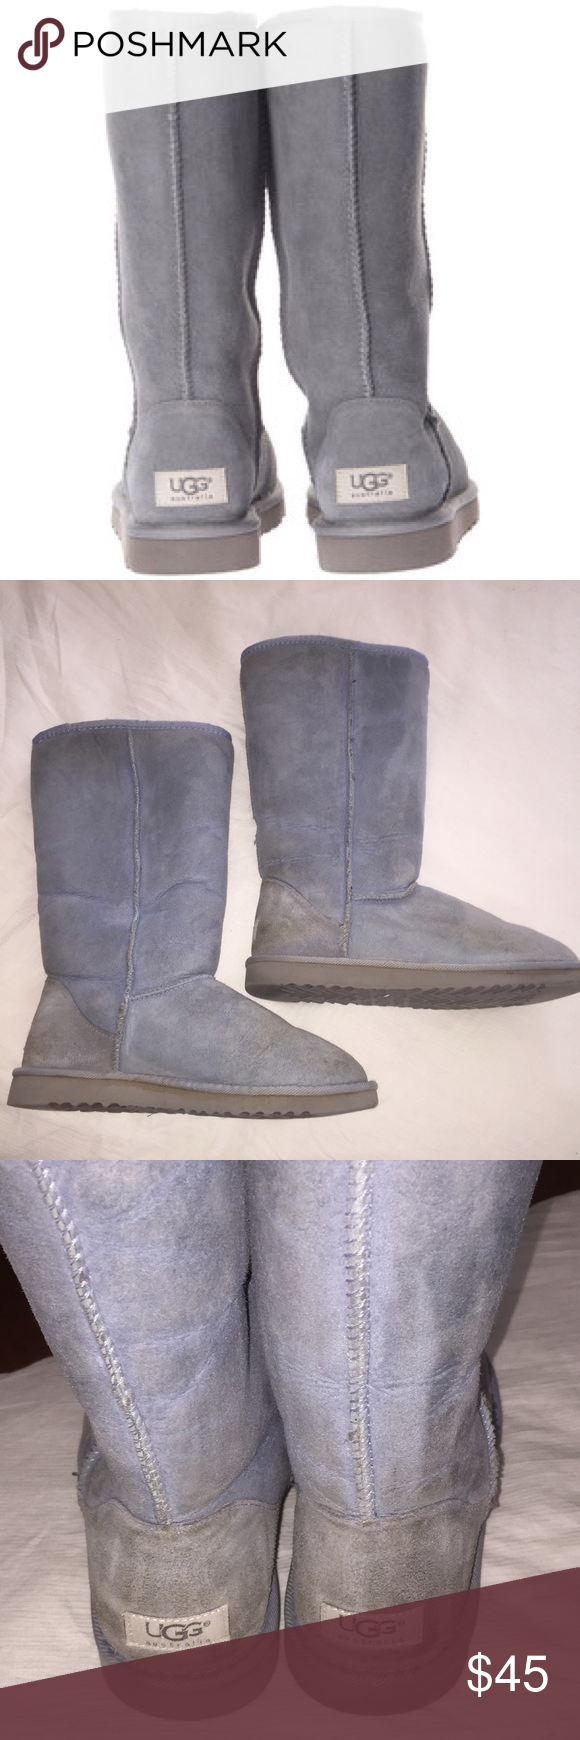 47acf9698e8 Ugg Classic Light Blue Tall Sheepskin Boots 9 This is a Ugg ...